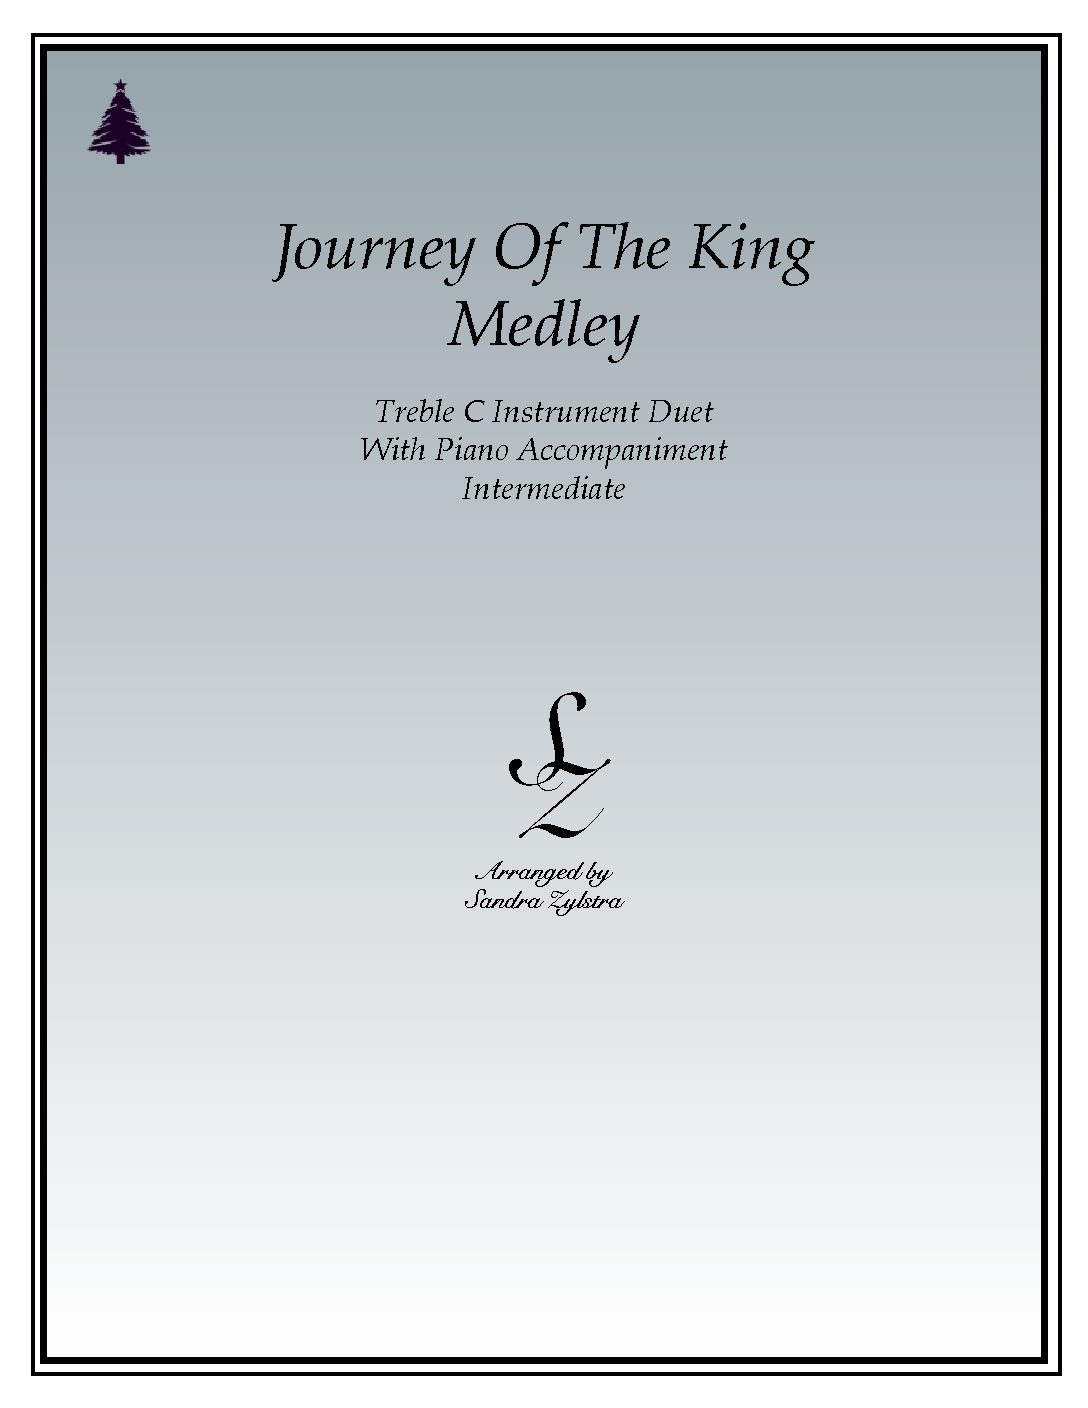 Journey Of The King – Instrument Duet & Piano Accompaniment